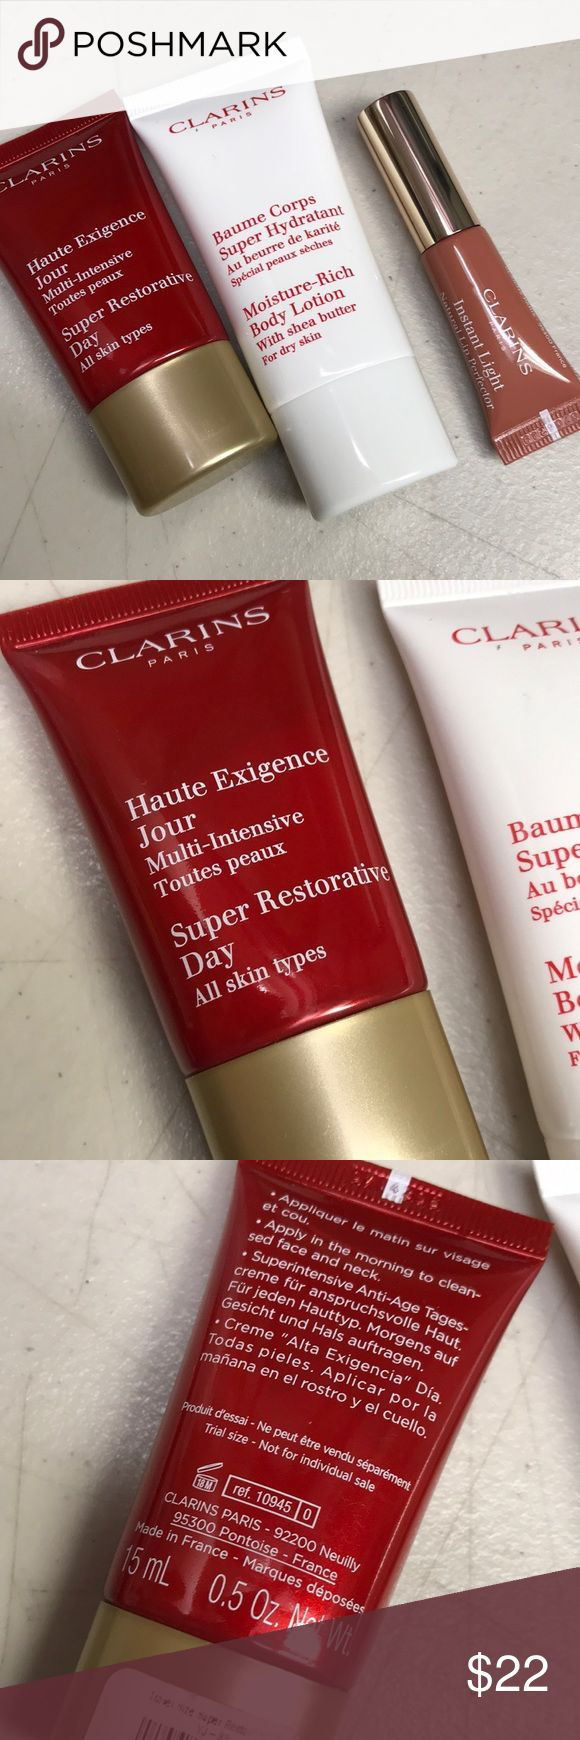 Clarins lip perfector eclat day cream body lotion Set of three Makeup Bronzer